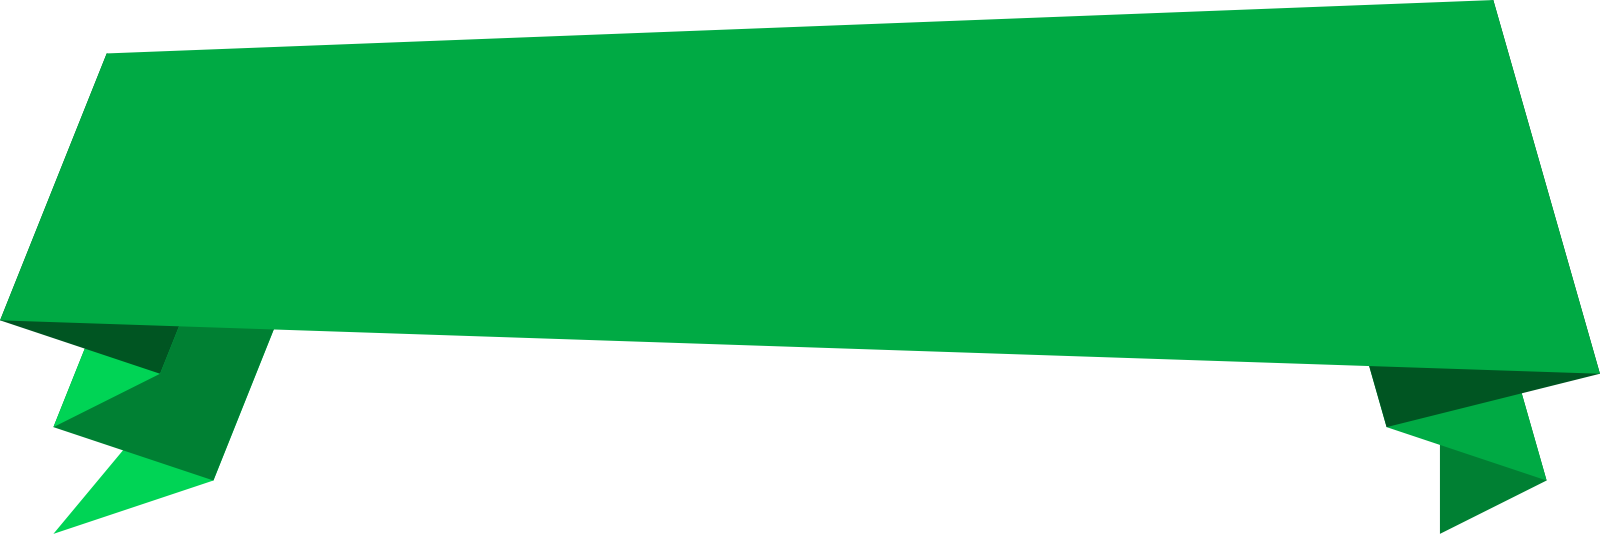 Green Banner Png image #40202